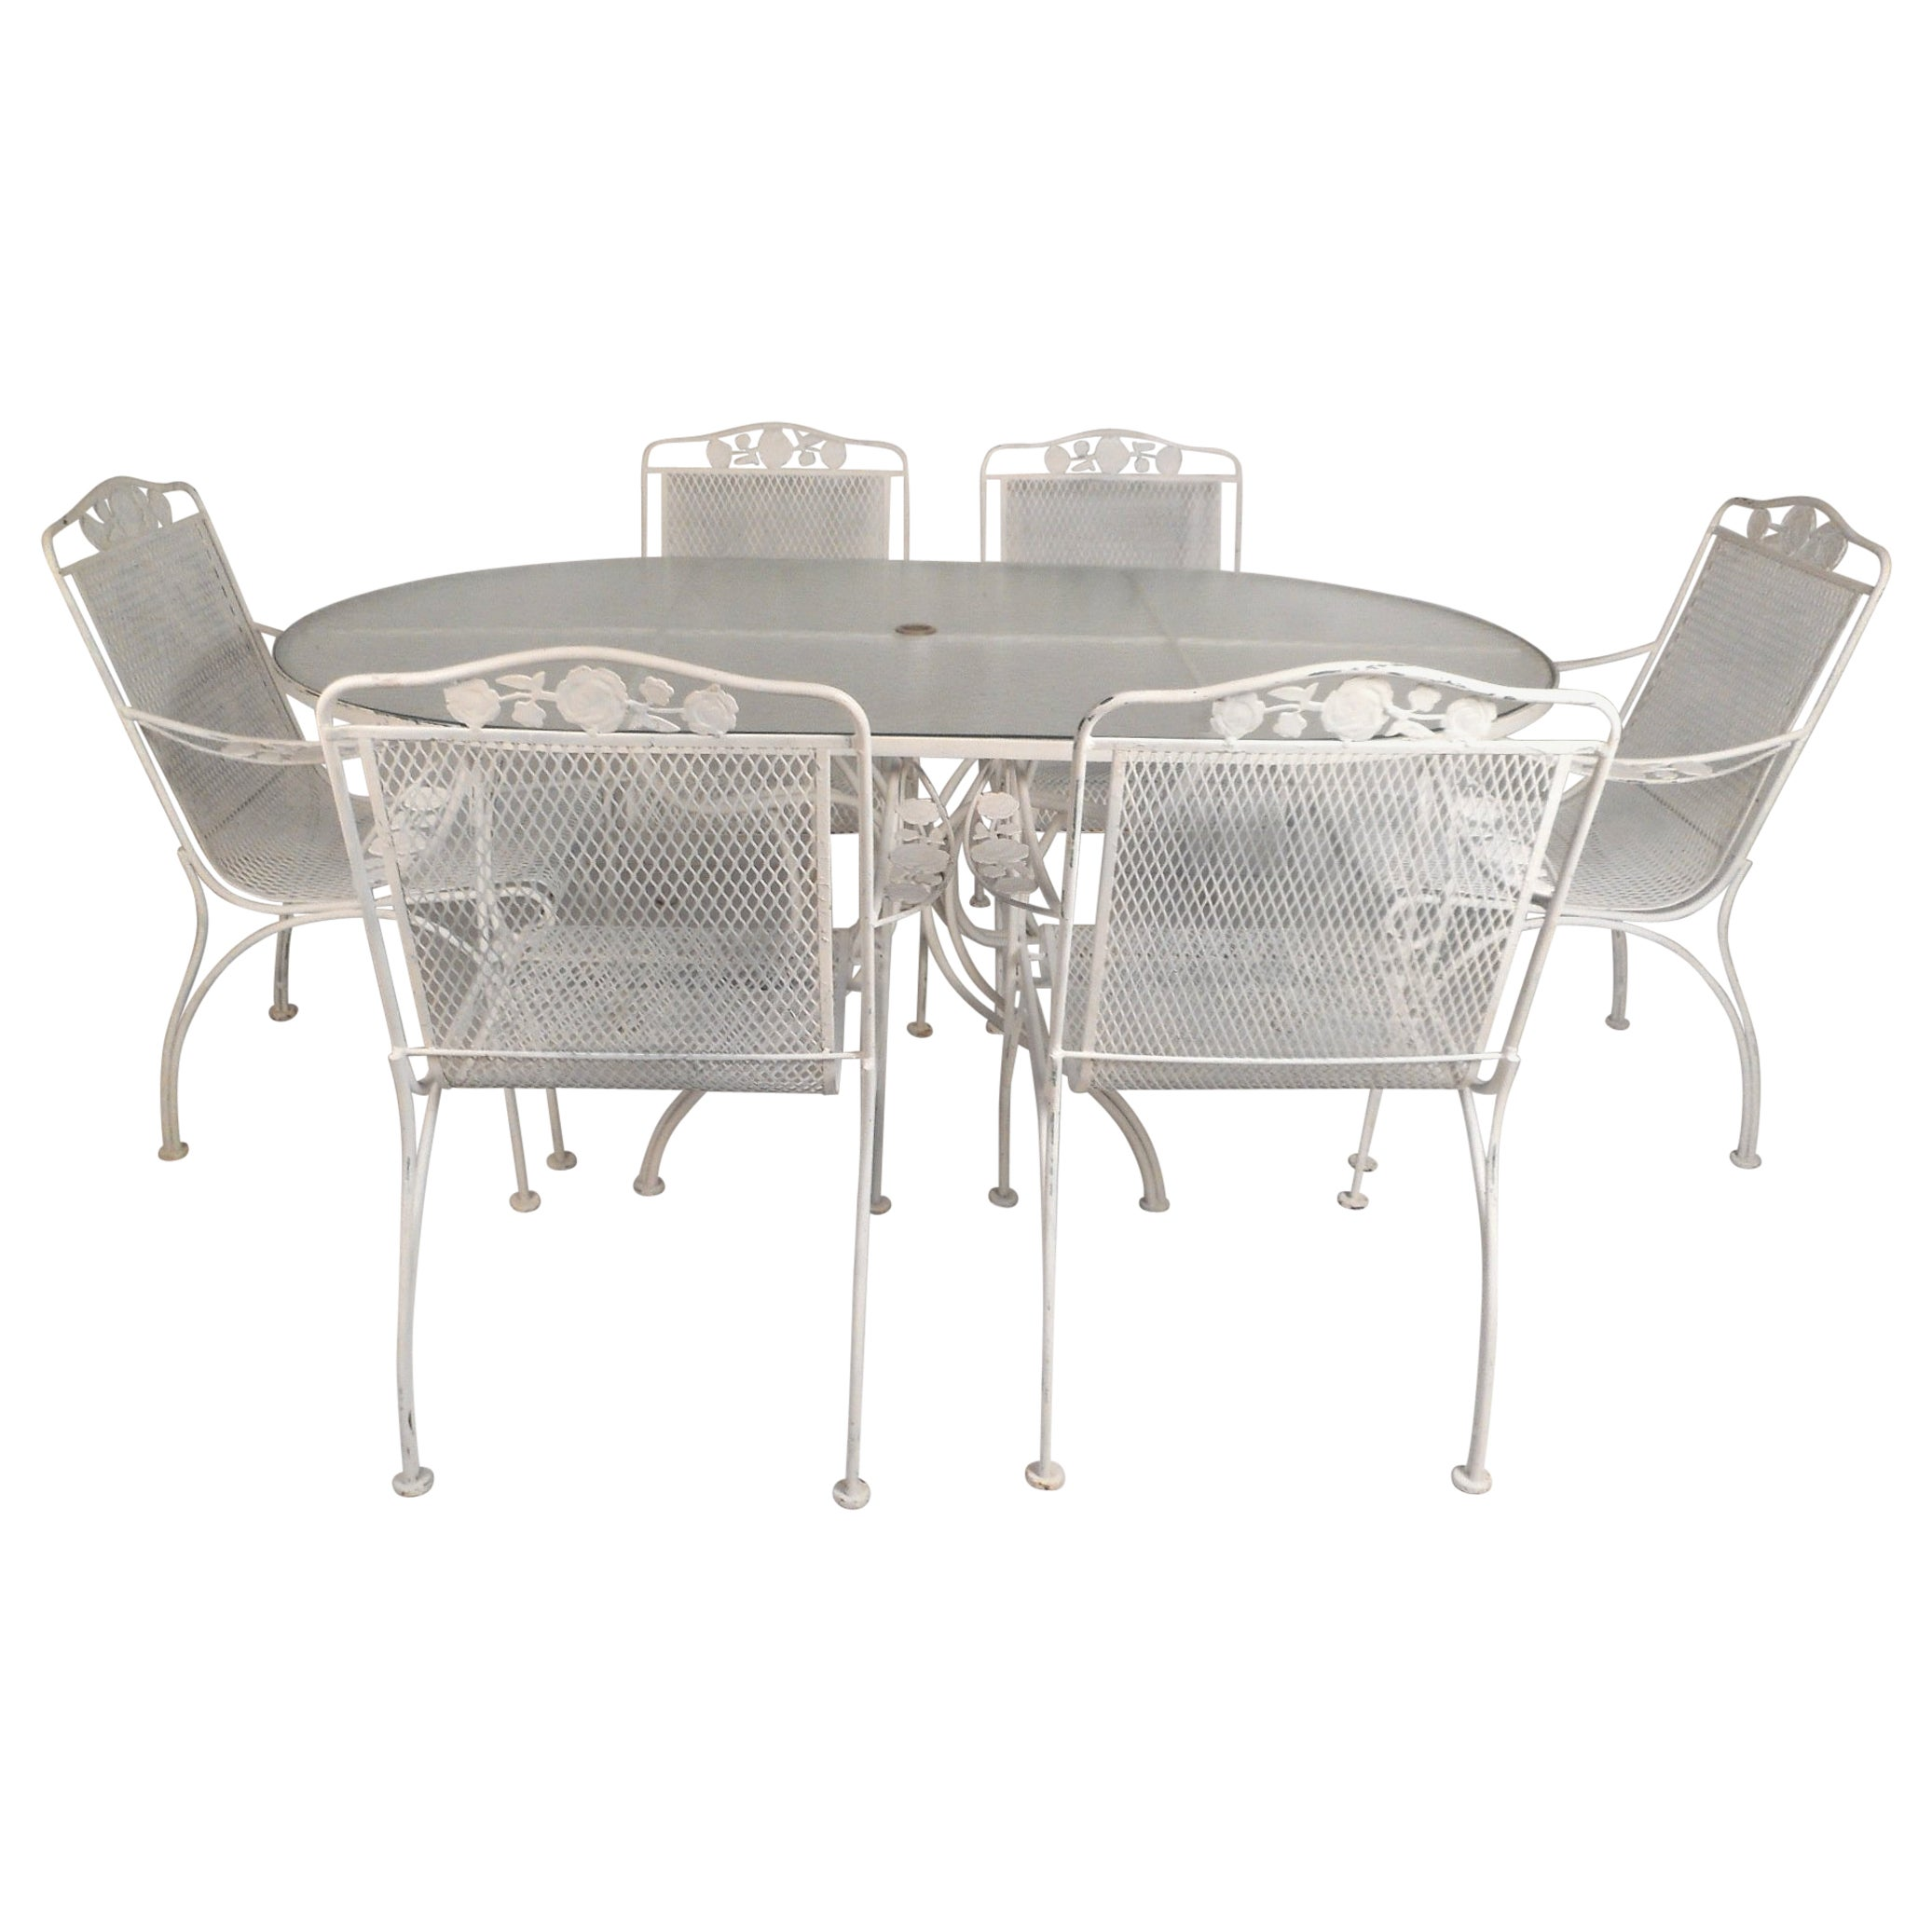 Mid century modern wrought iron patio dining table and six chairs for sale at 1stdibs